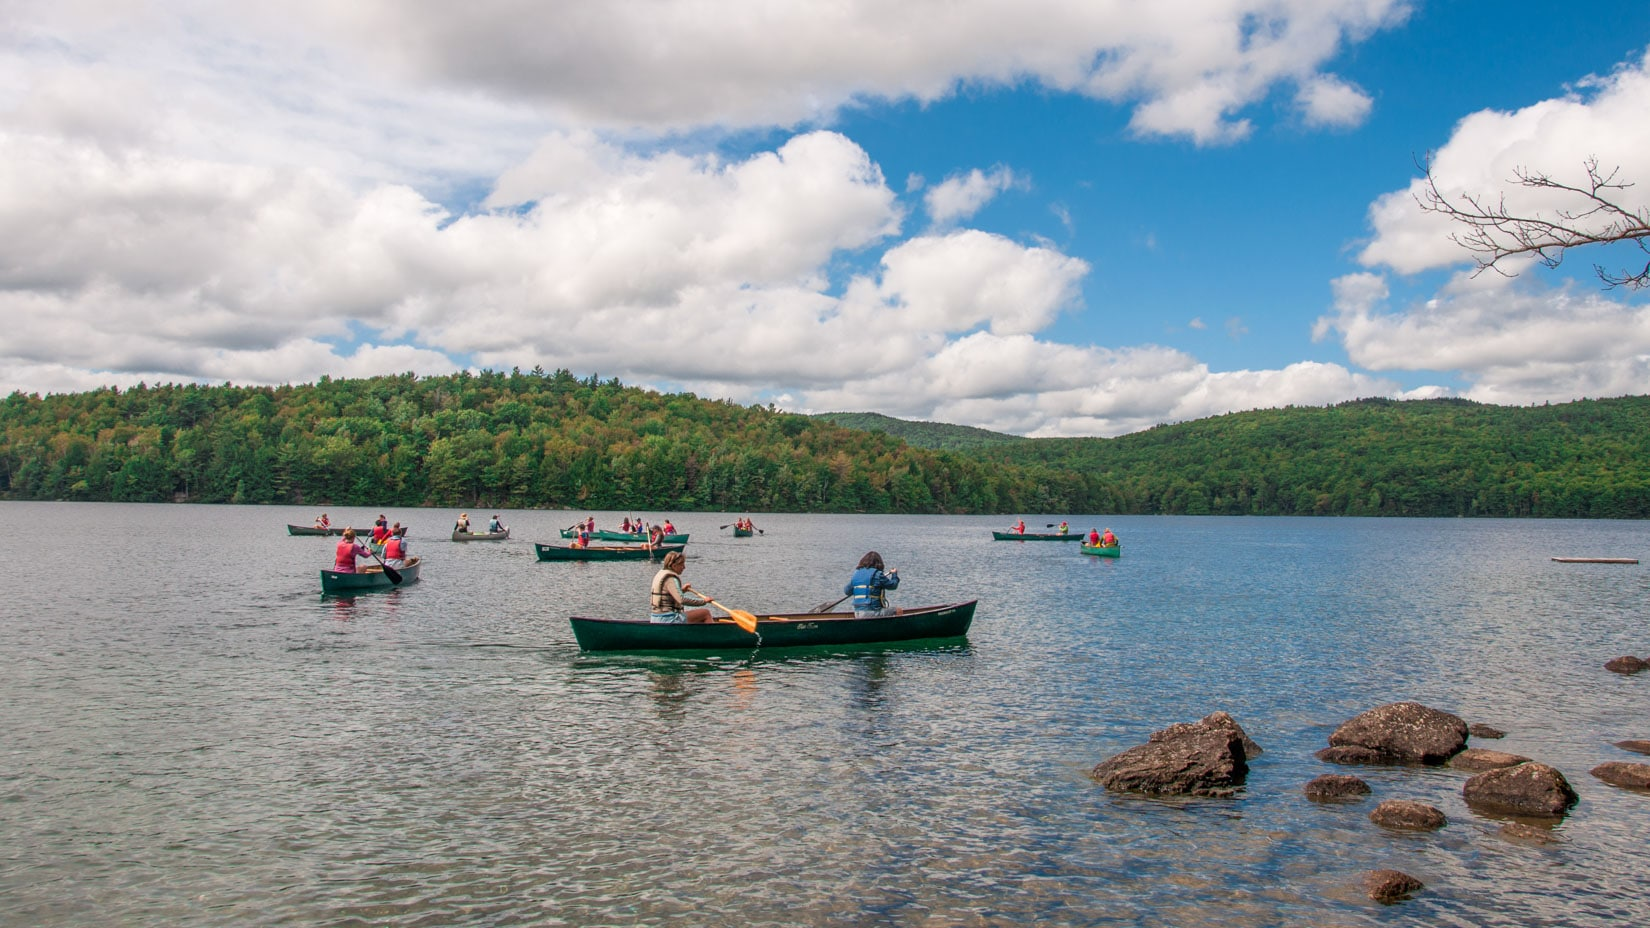 Campers exploring the lake in canoes.